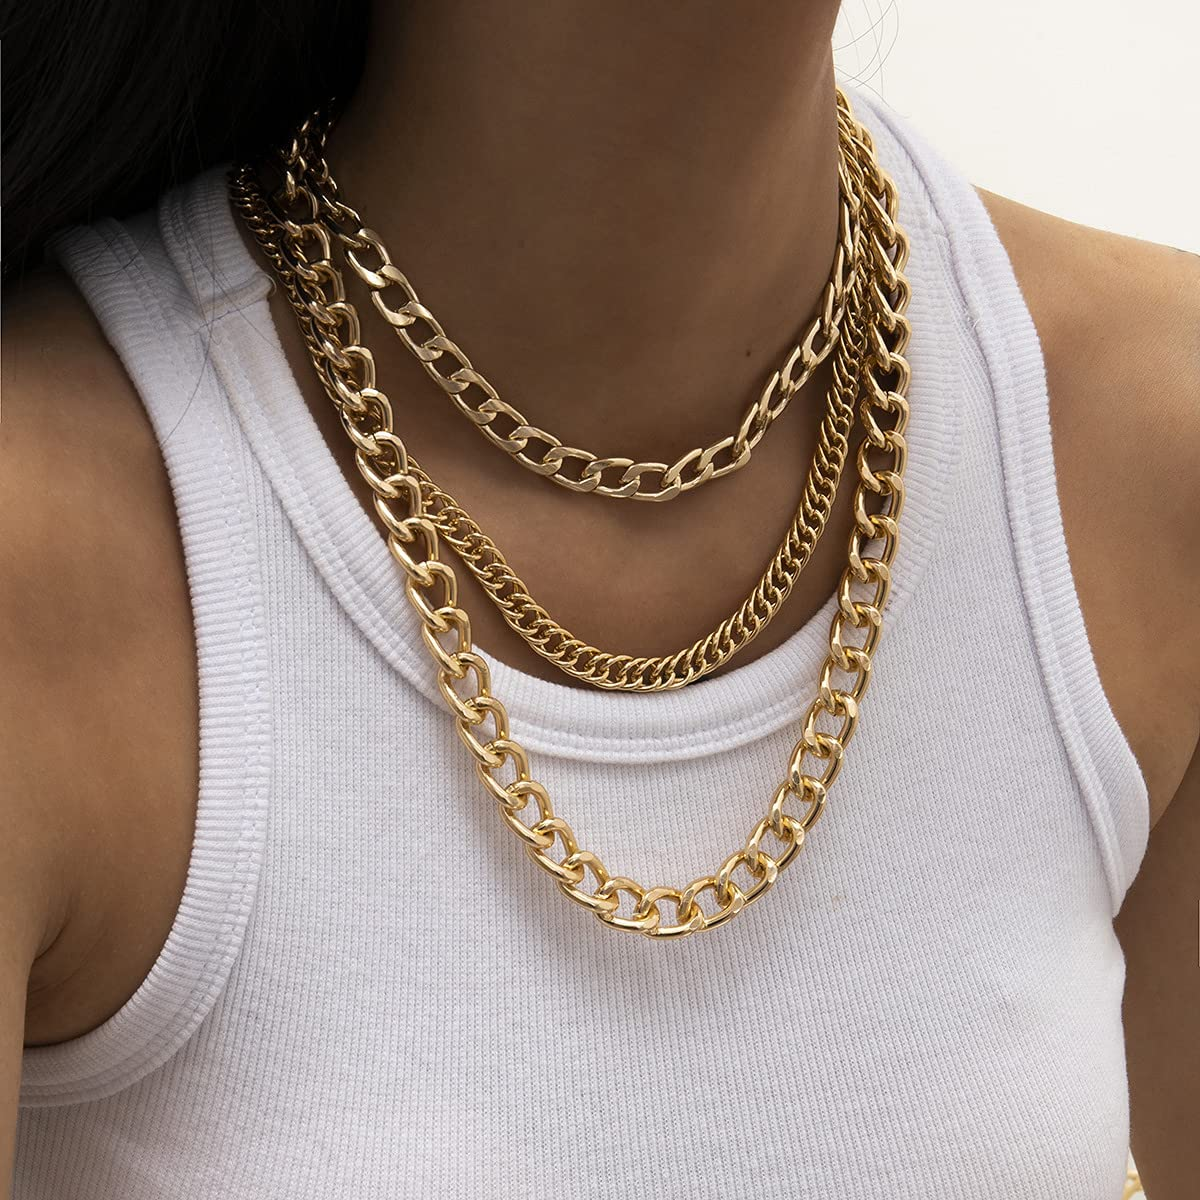 Cuban Chunky Chain Layered Necklaces Bracelets Set for Women, Gold Plated Thick Link Chain Choker Necklace Cute Dainty Round Circle Bracelet kit for Women Girls Handmade Jewelry Birthday Gifts